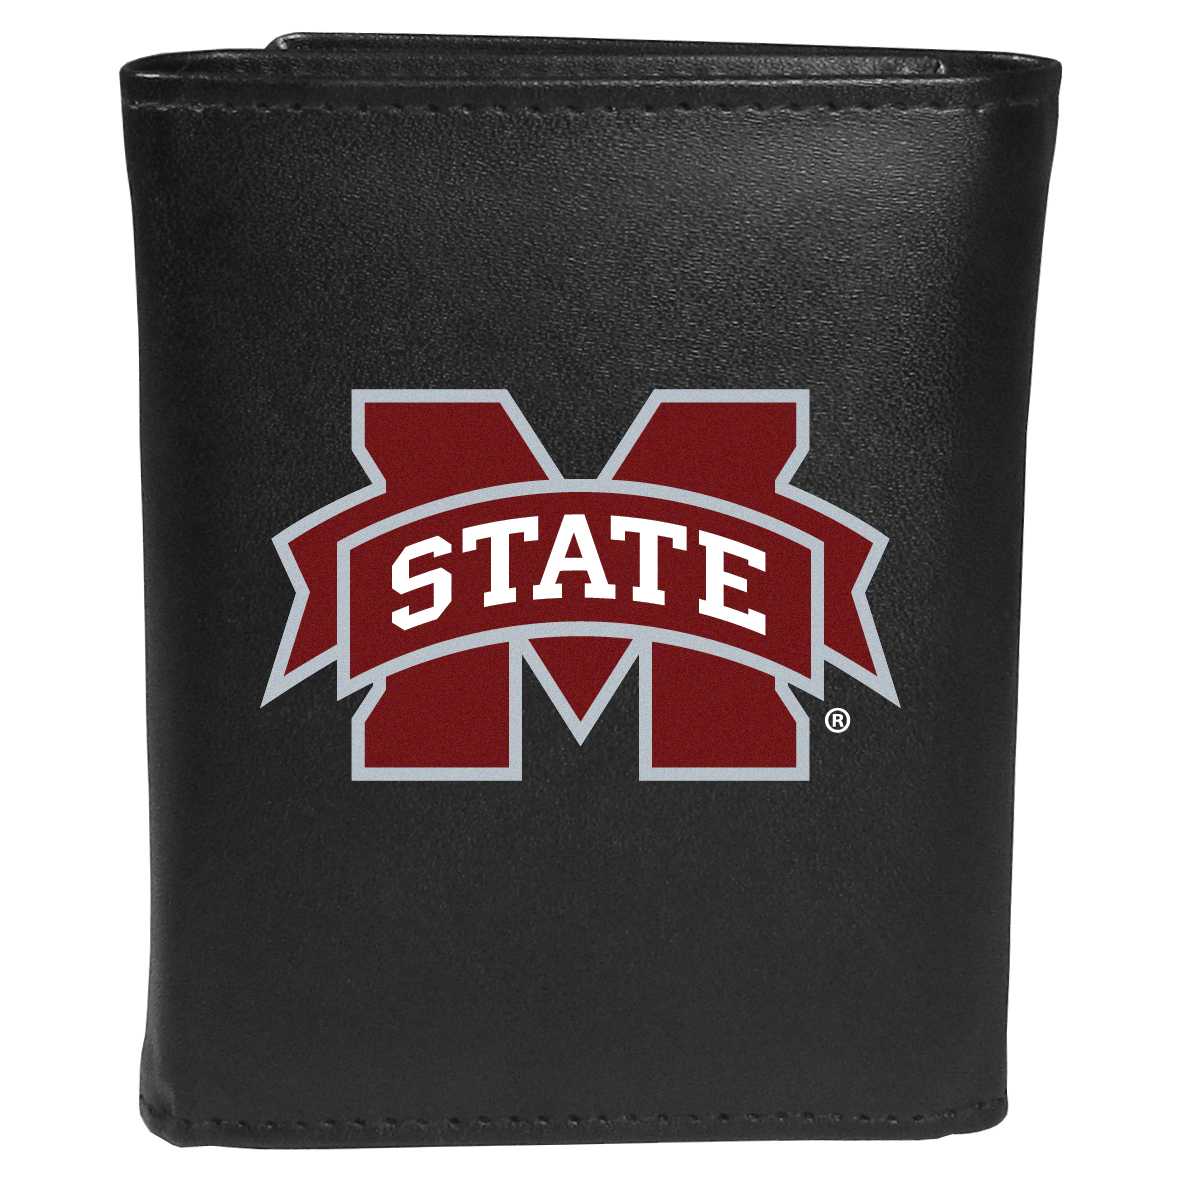 Mississippi St. Bulldogs Tri-fold Wallet Large Logo - Sports fans do not have to sacrifice style with this classic tri-fold wallet that sports theMississippi St. Bulldogs?extra large logo. This men's fashion accessory has a leather grain look and expert craftmanship for a quality wallet at a great price. The wallet features inner credit card slots, windowed ID slot and a large billfold pocket. The front of the wallet features an extra large printed team logo.